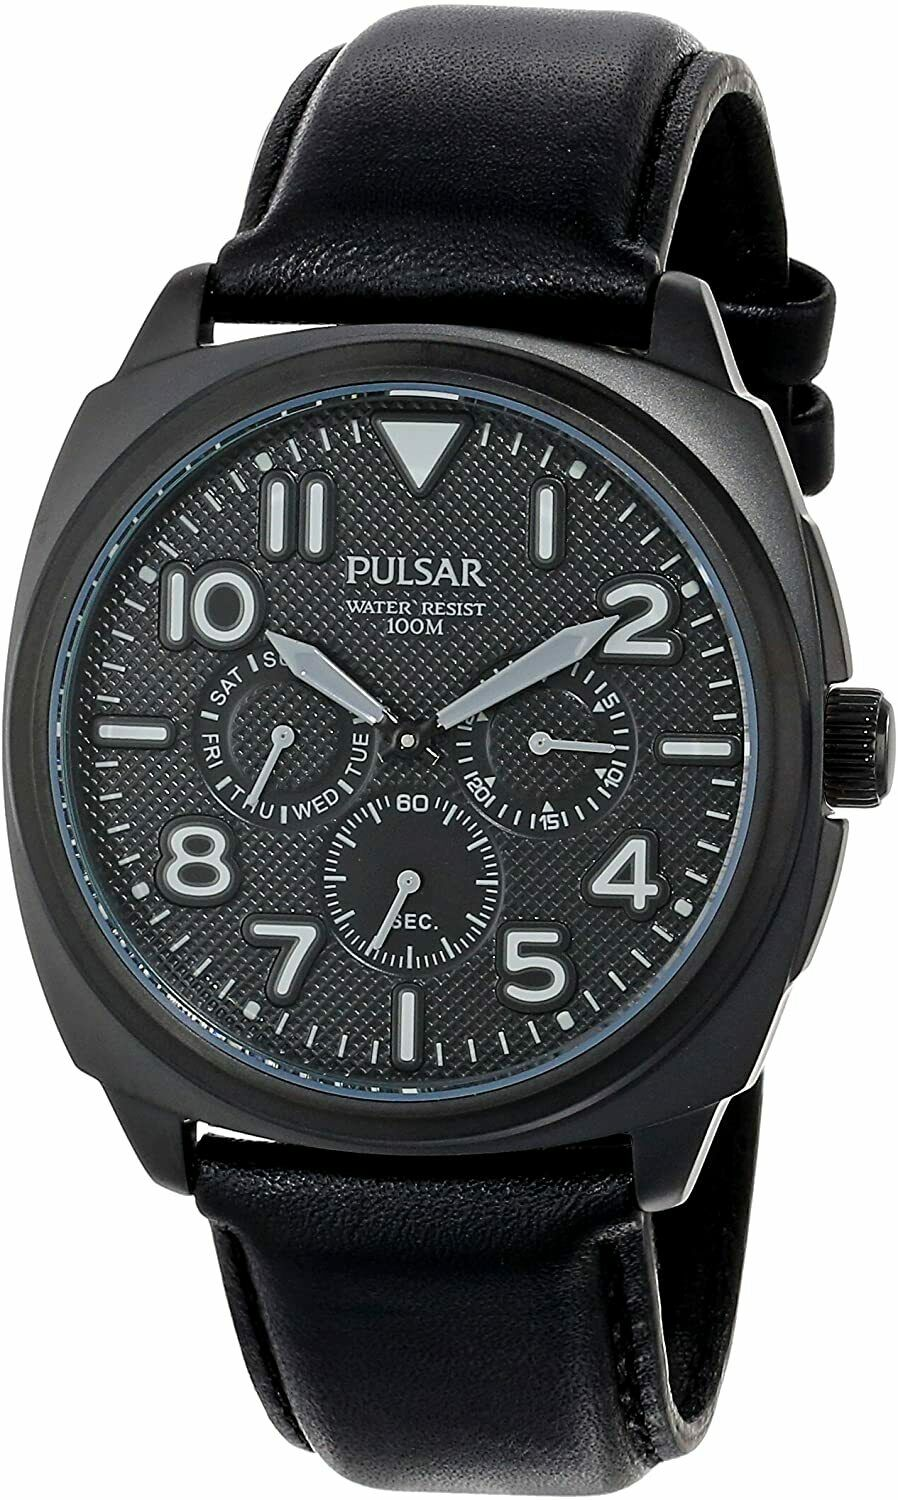 Pulsar by Seiko PP6085 Japan Quartz Movement Mens Watch Calendar Date Black Leather Band